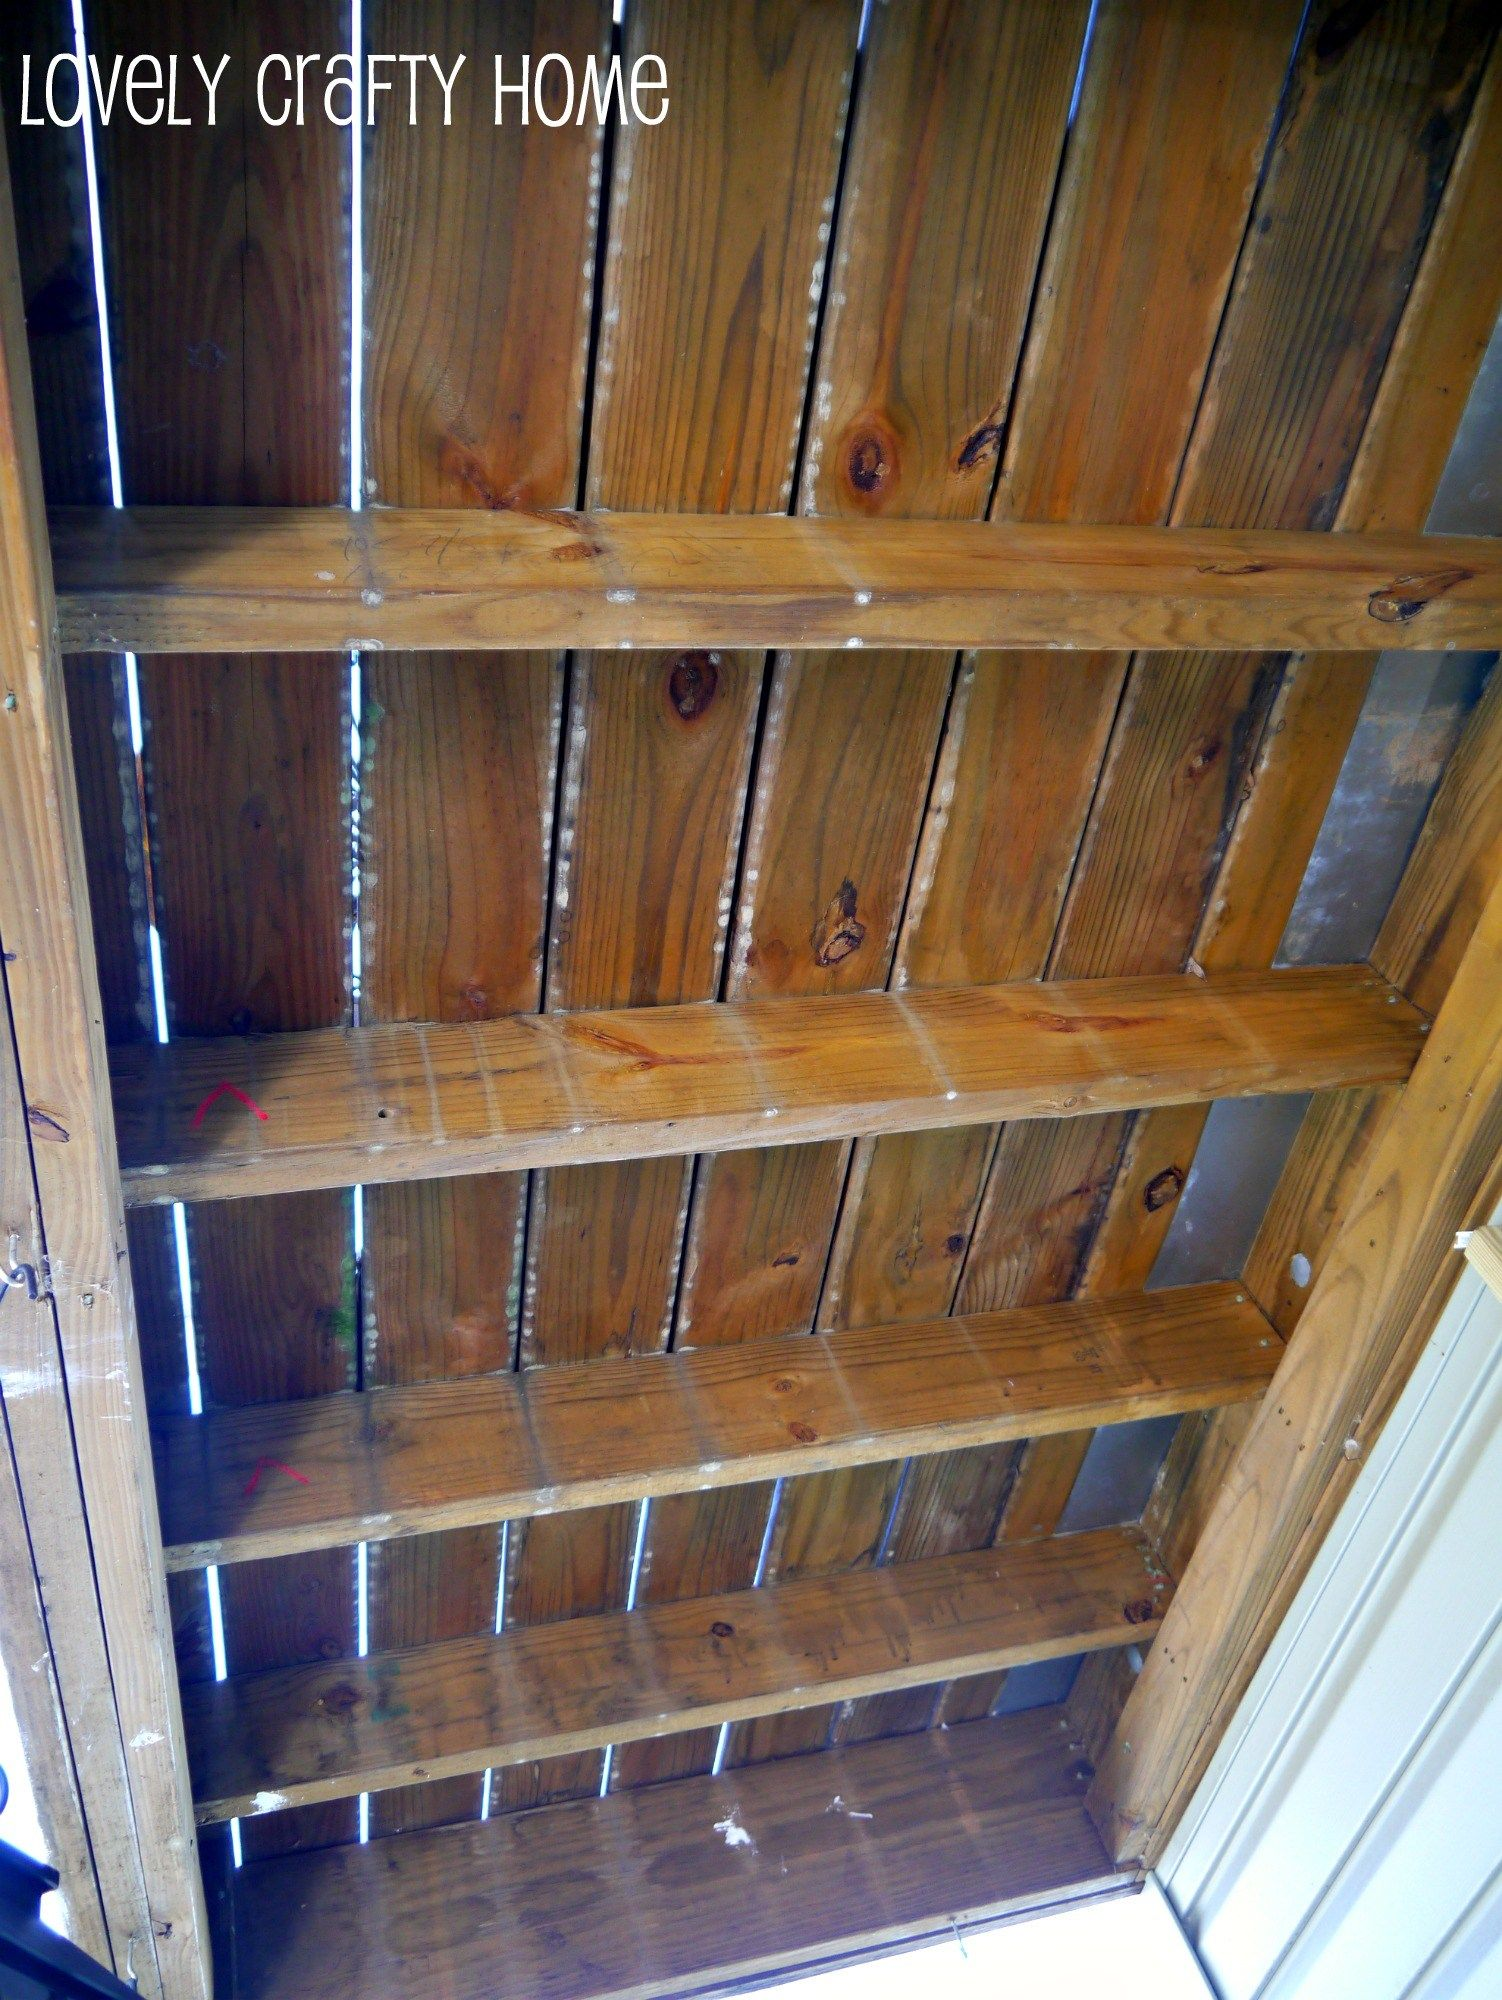 Install A Ceiling Under Your Deck To Drain Water Away And Keep It Dry Under Deck Ceiling Diy Deck Under Decks